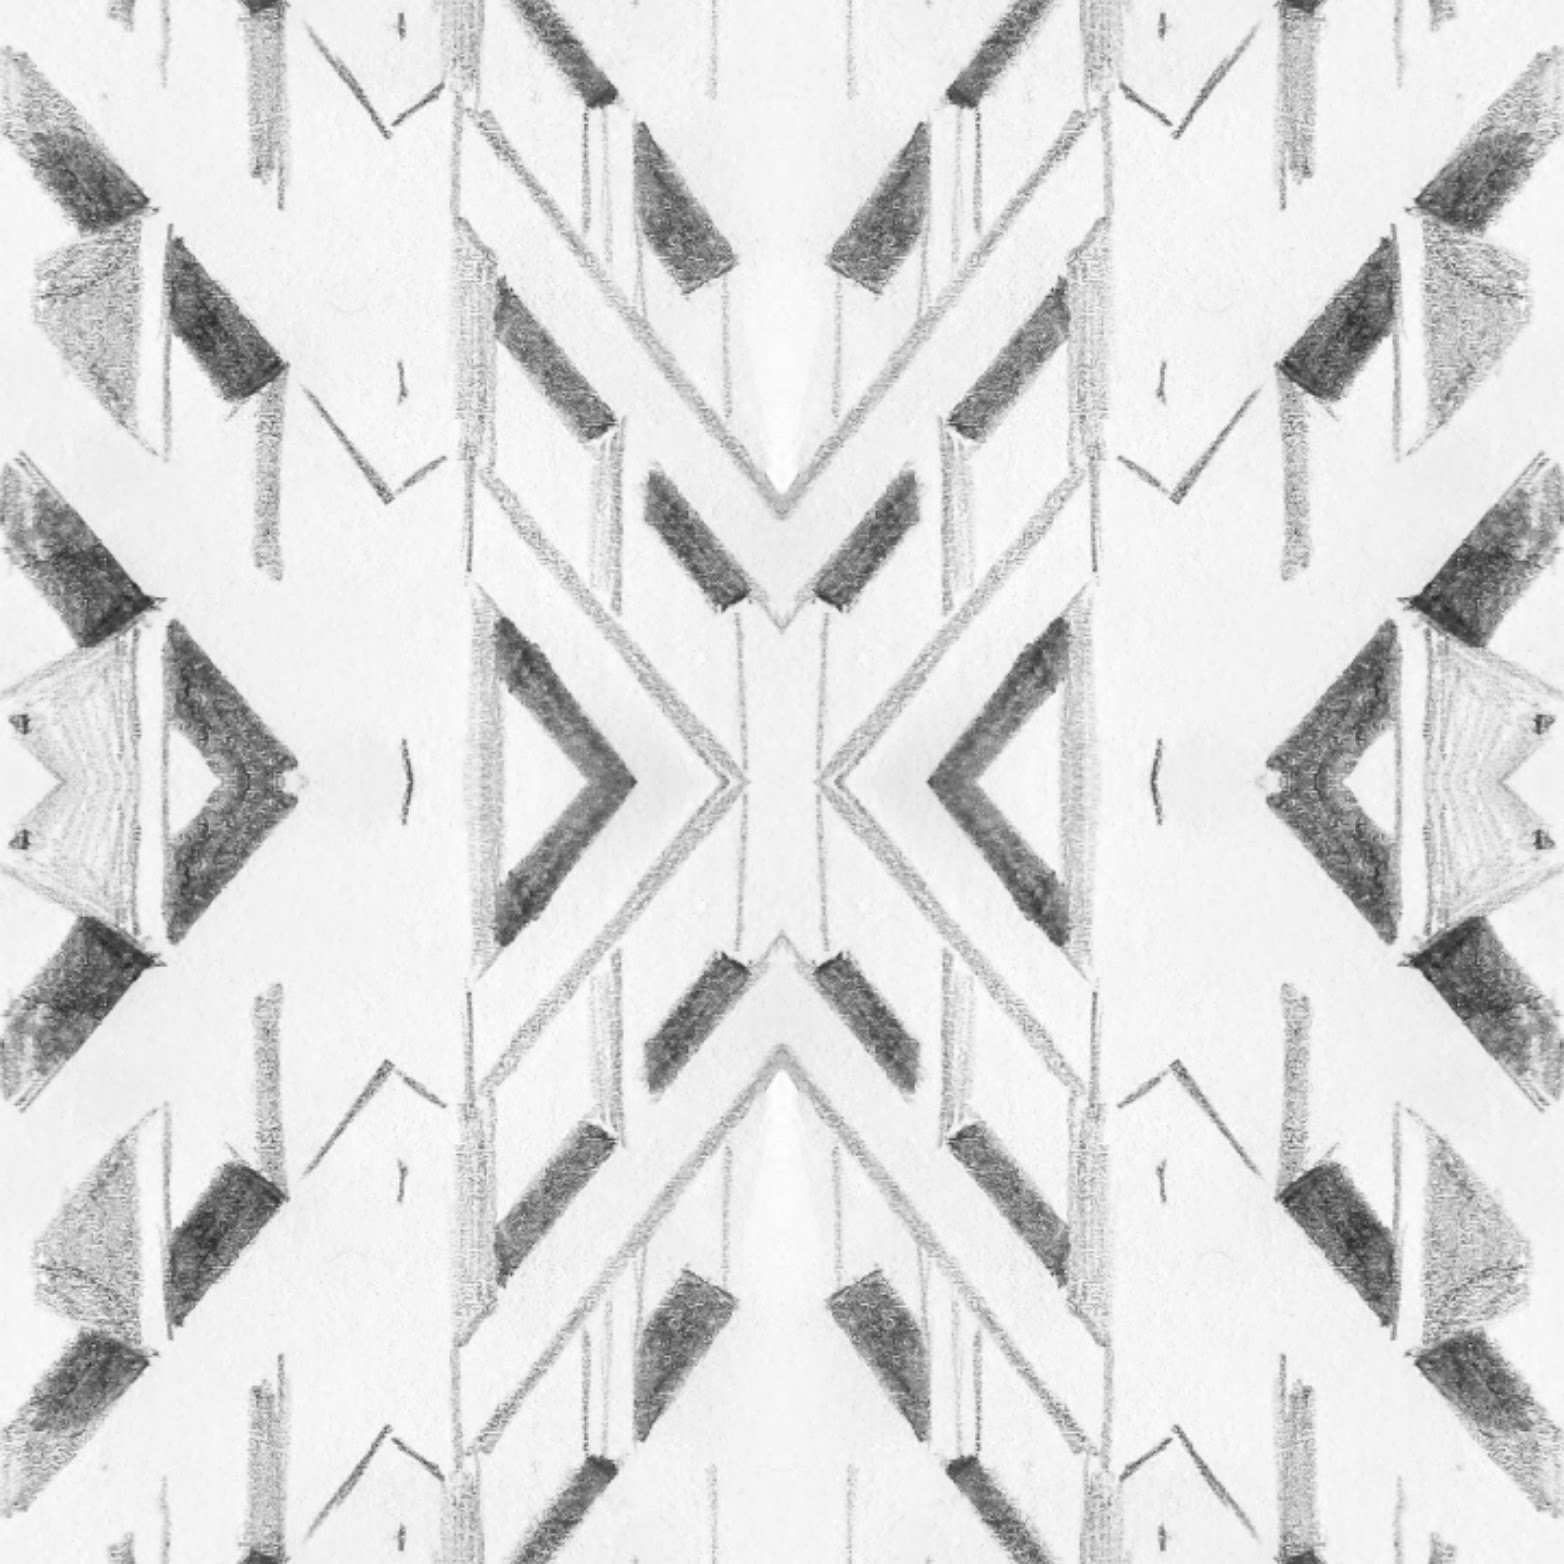 architectural pattern drawing 5 cross